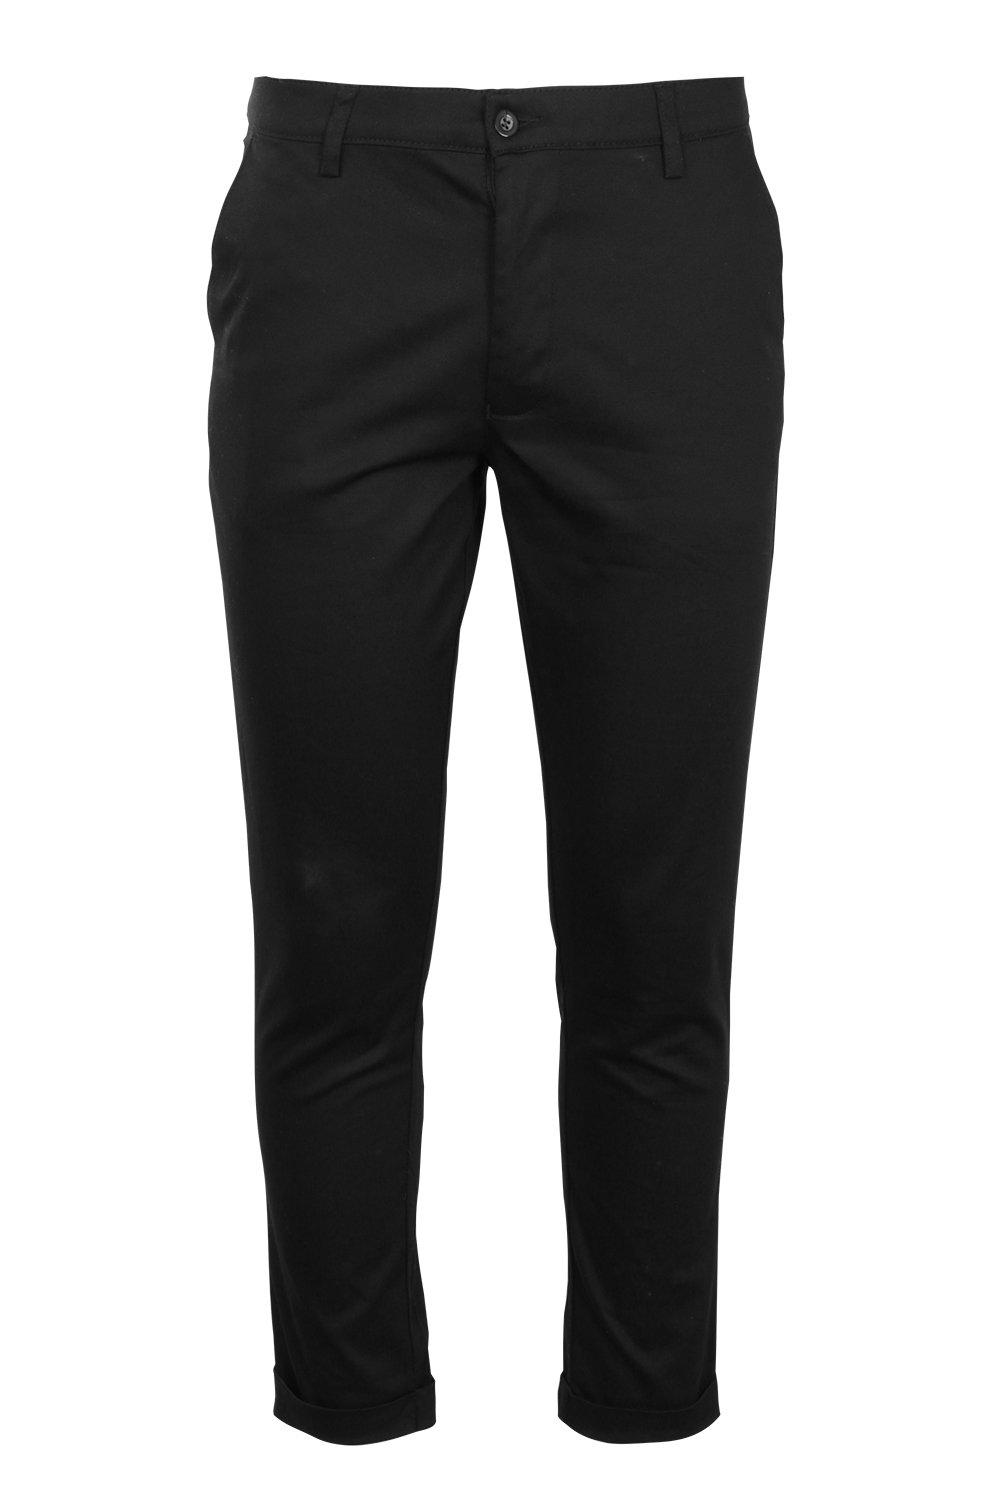 boohooMAN Black Tapered Fit Chino With Stretch